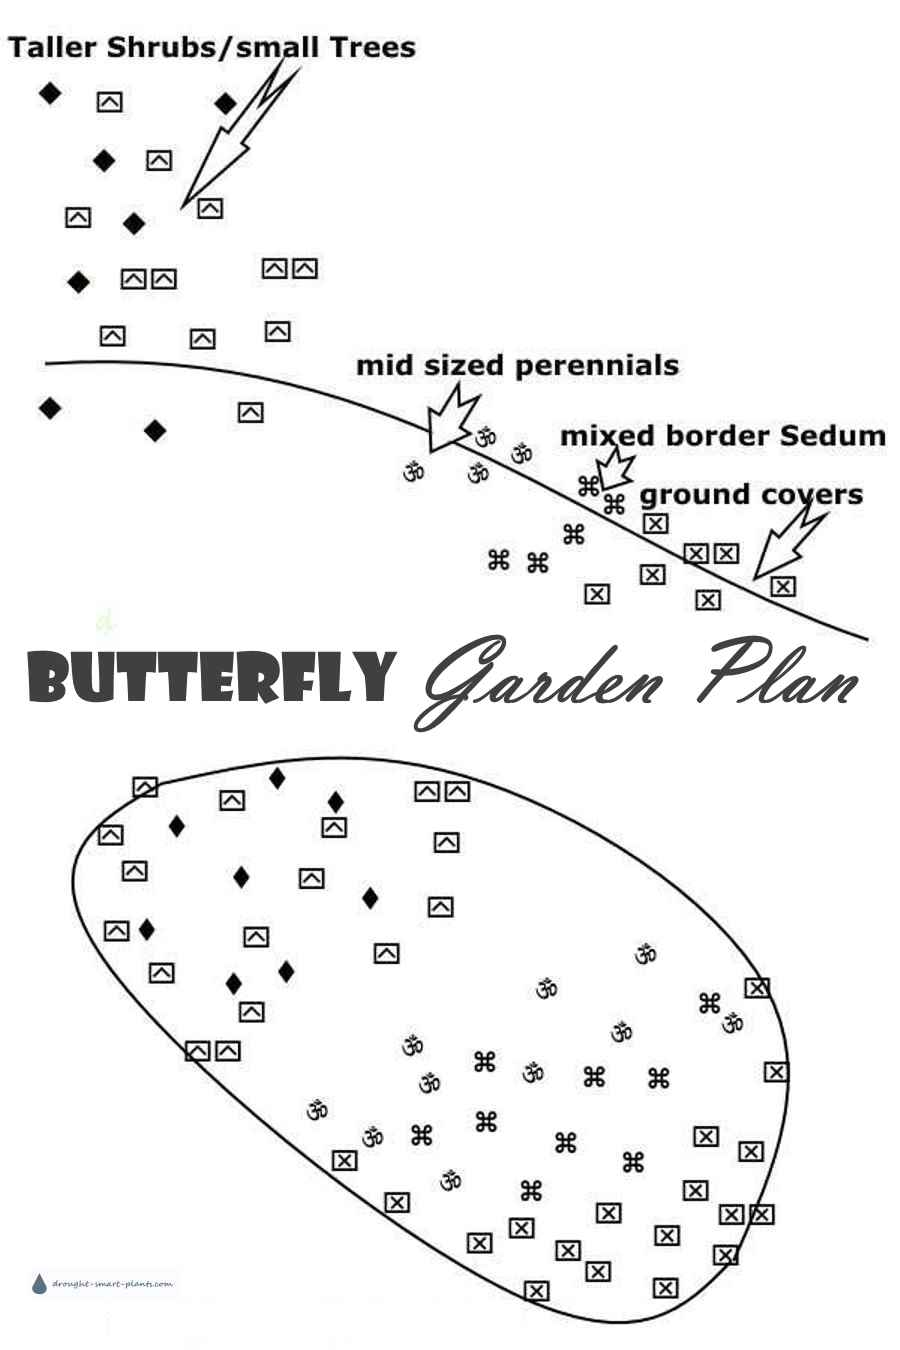 Butterfly Garden Plan - where to put it alll...